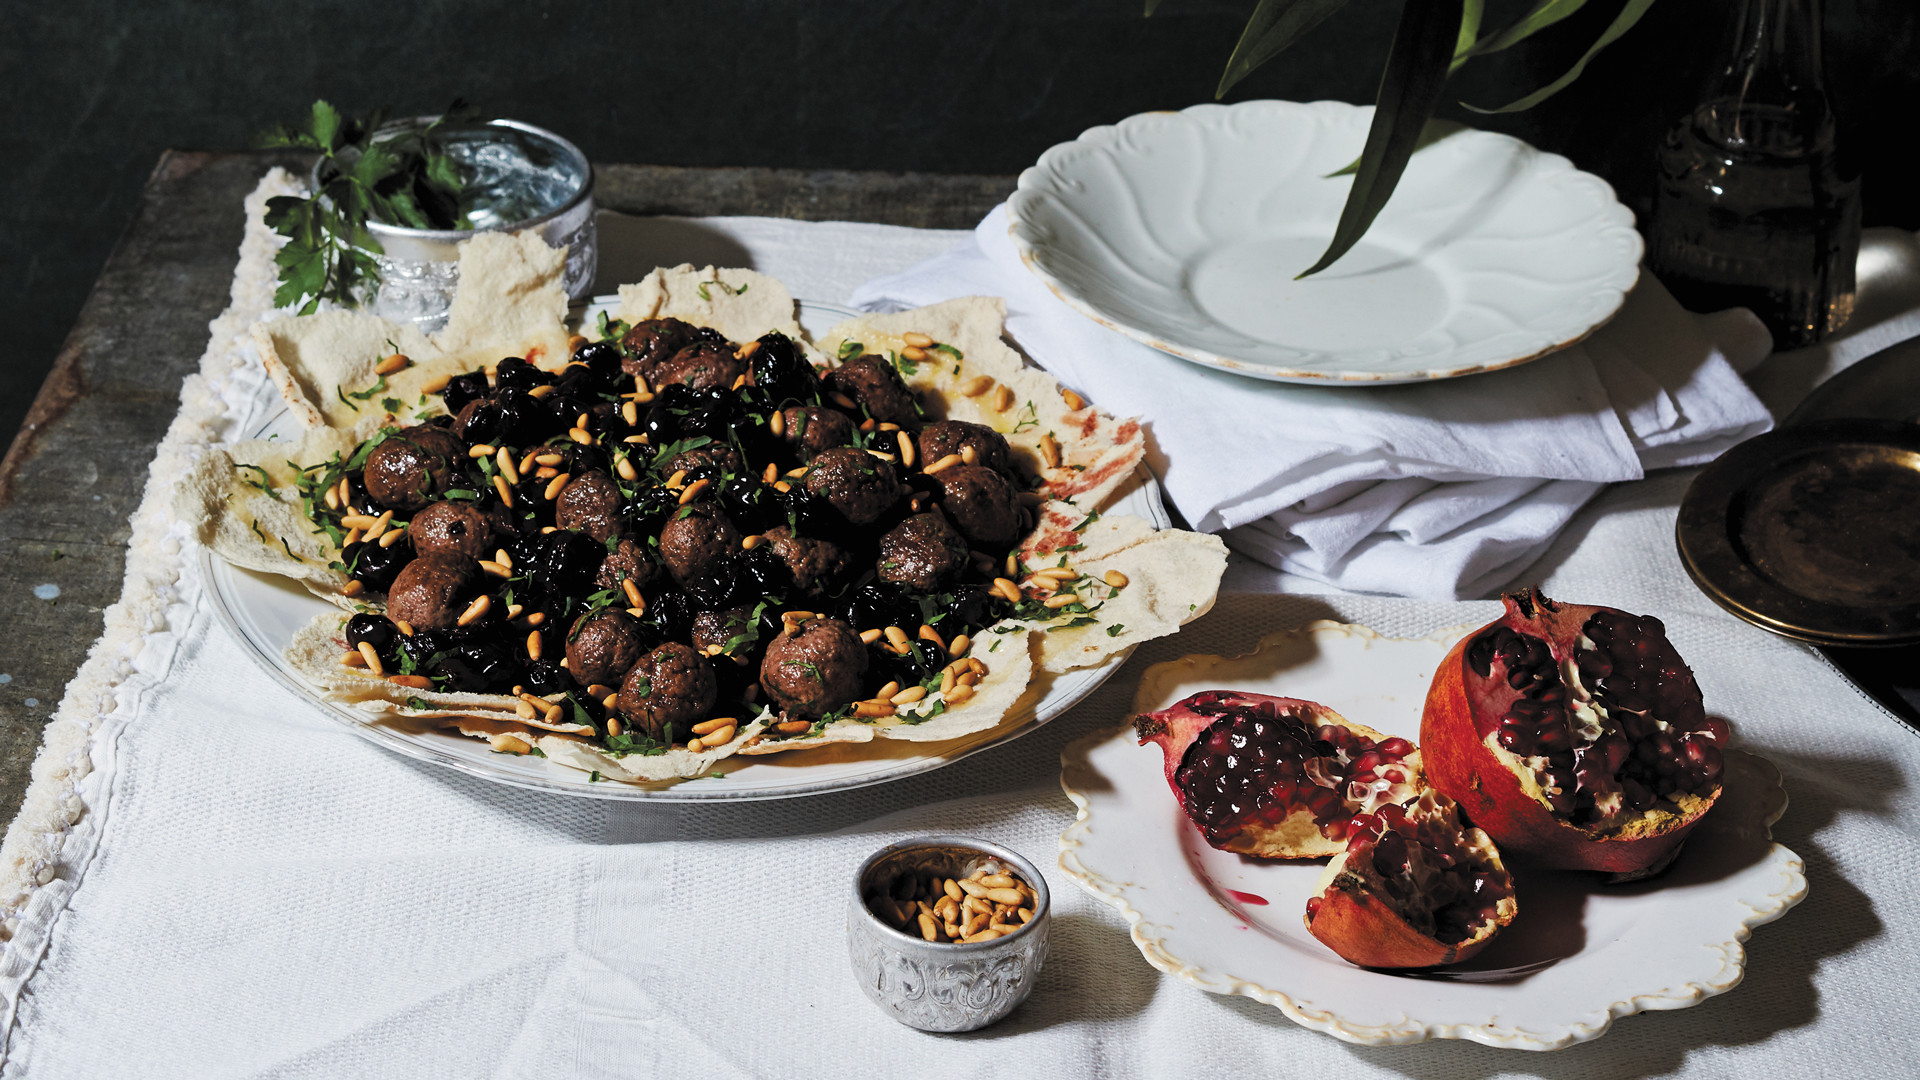 Feast: Food of the Islamic world by Anissa Helou